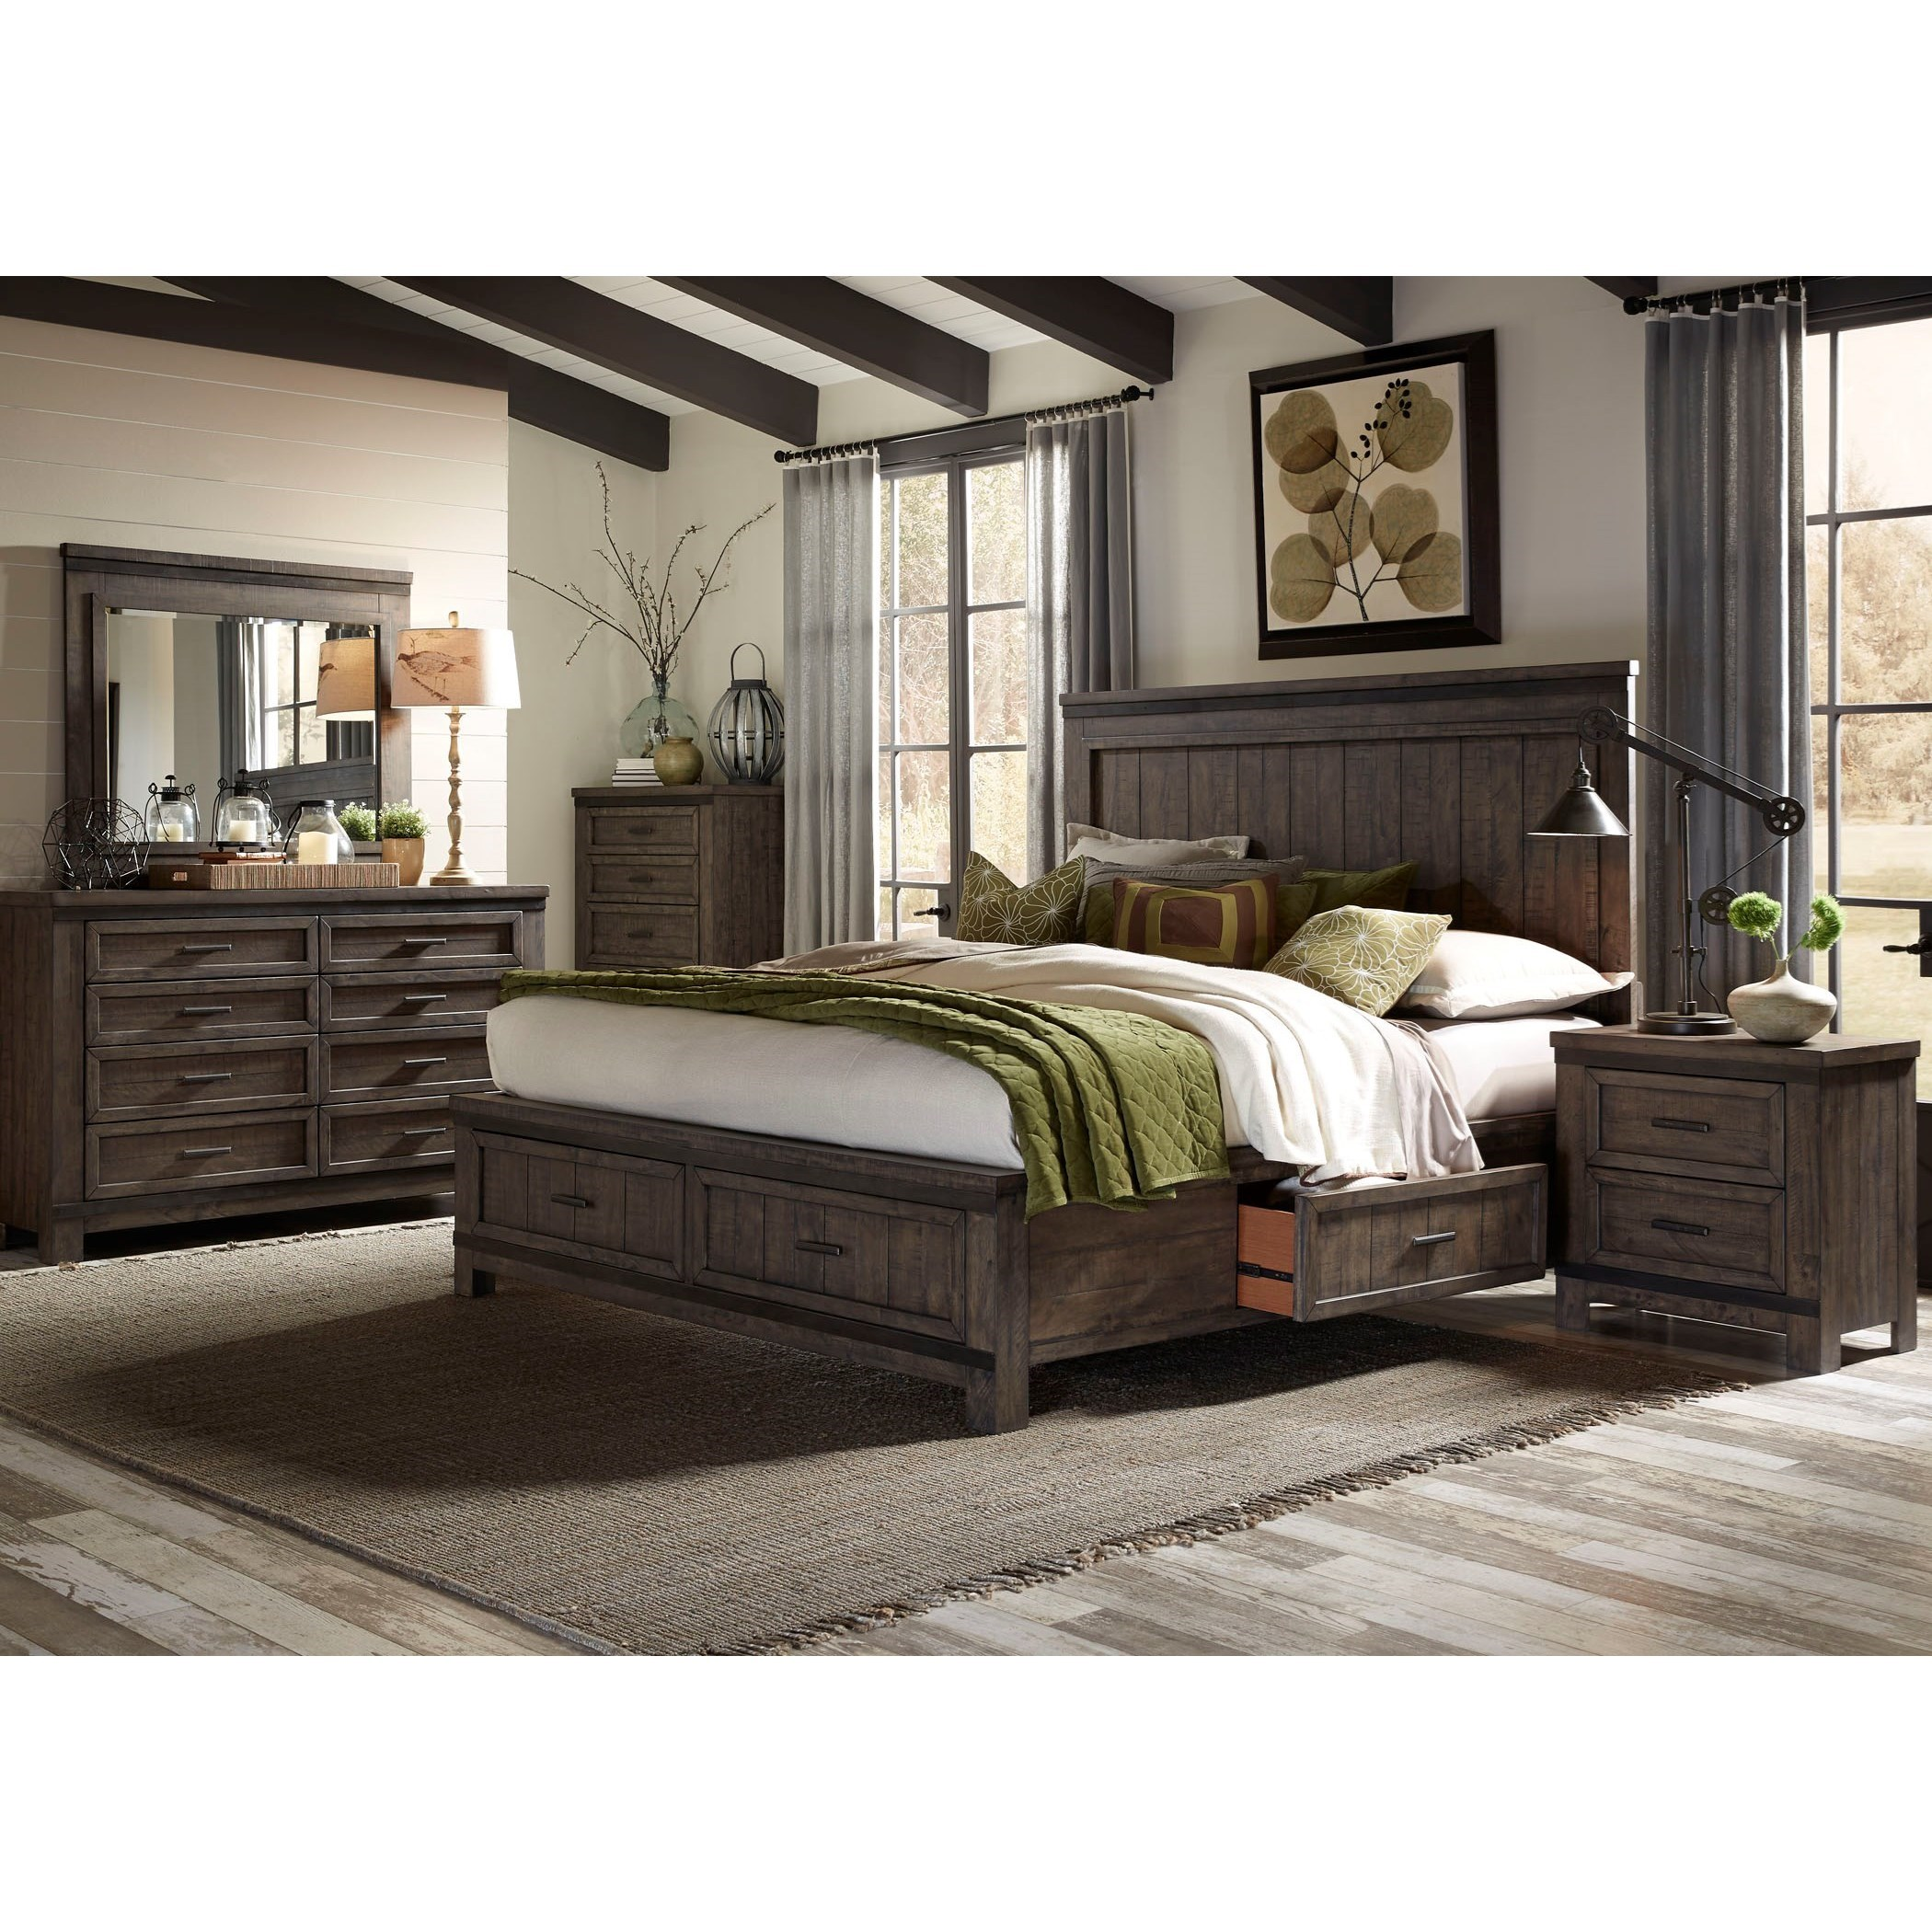 Liberty Furniture Thornwood Hills 759 Br K2sdmcn King